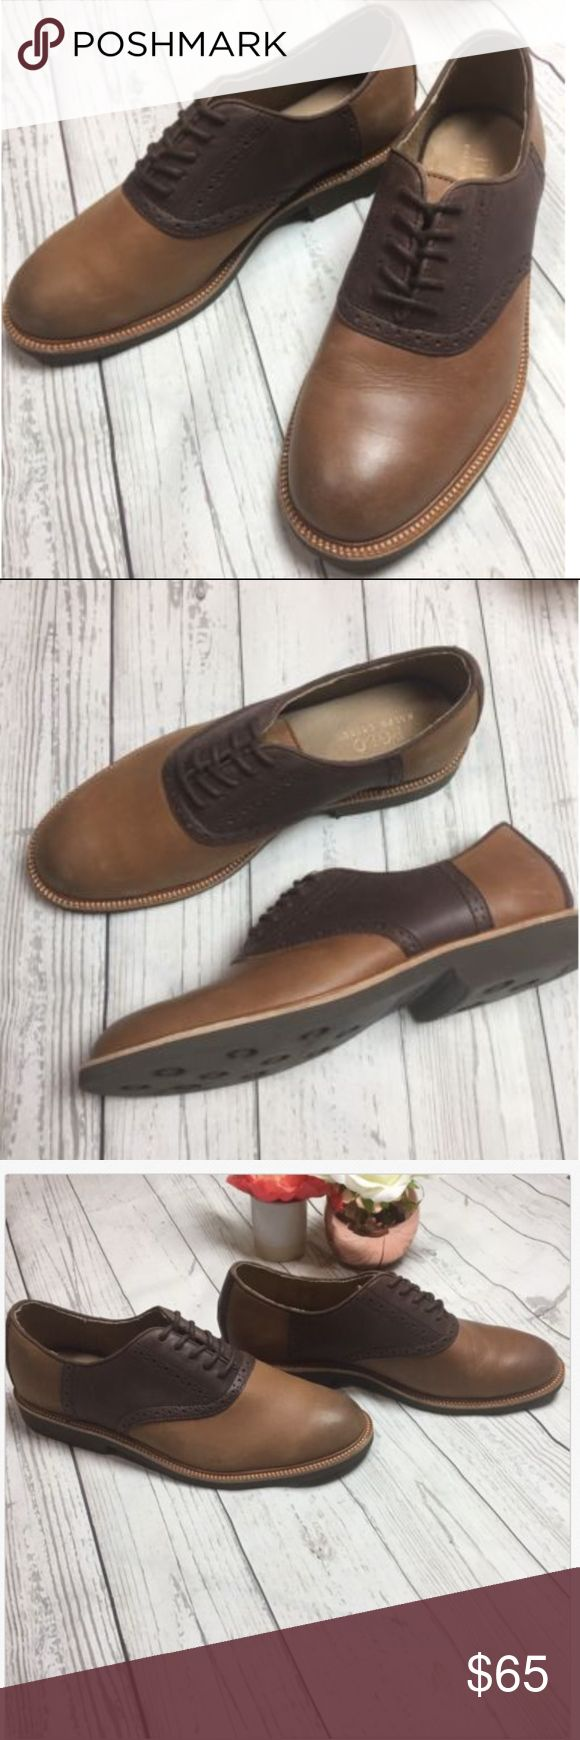 Polo Ralph Lauren Brown Leather Saddle Oxford Shoe POLO Ralph Lauren Size 9.5  Mens brown leather Torrington saddle Oxford shoes in great condition! Polo by Ralph Lauren Shoes Oxfords & Derbys